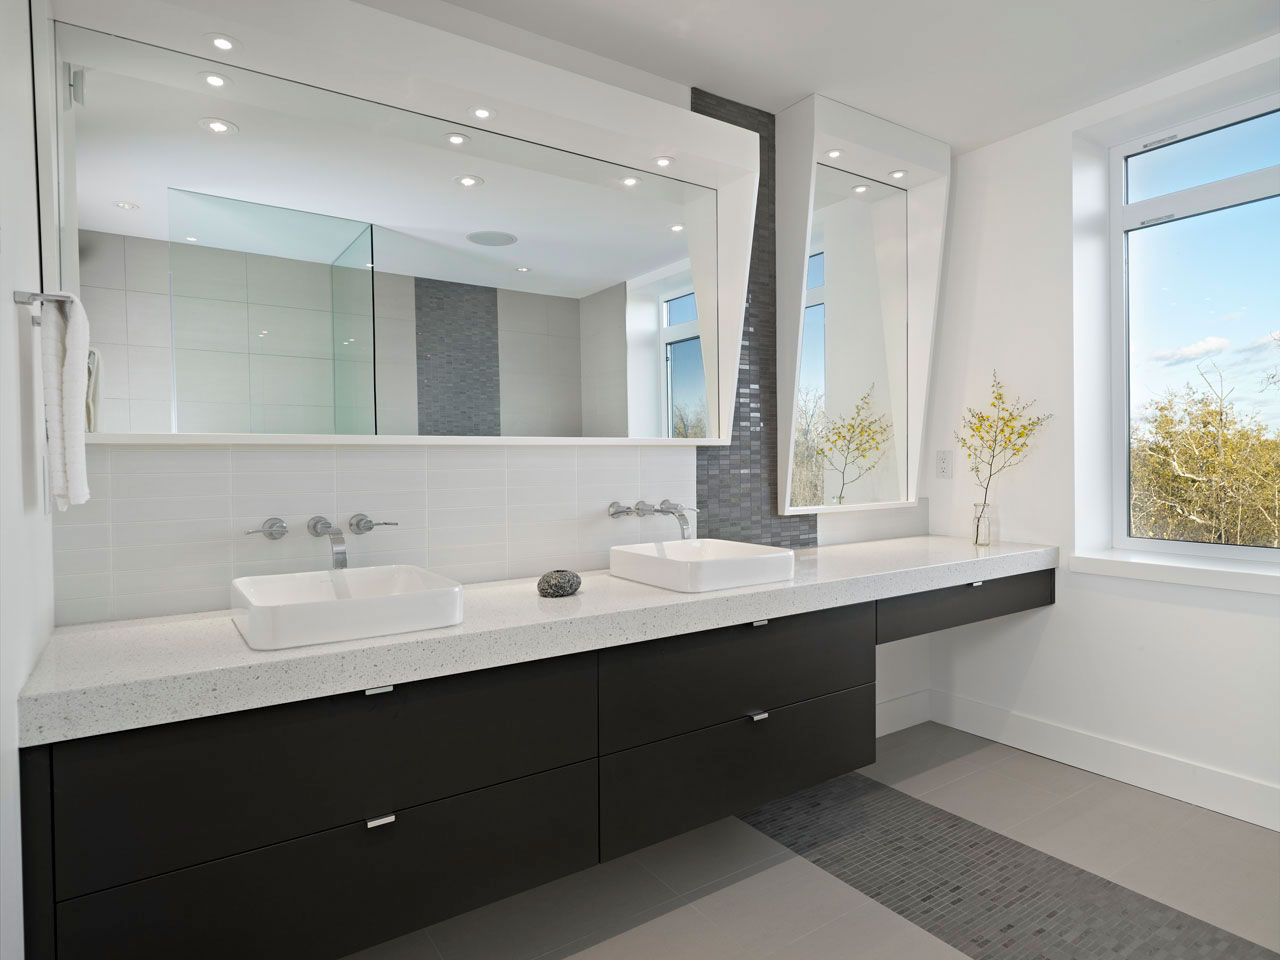 Black & White Bathroom, Contemporary Home in Edmonton, Canada